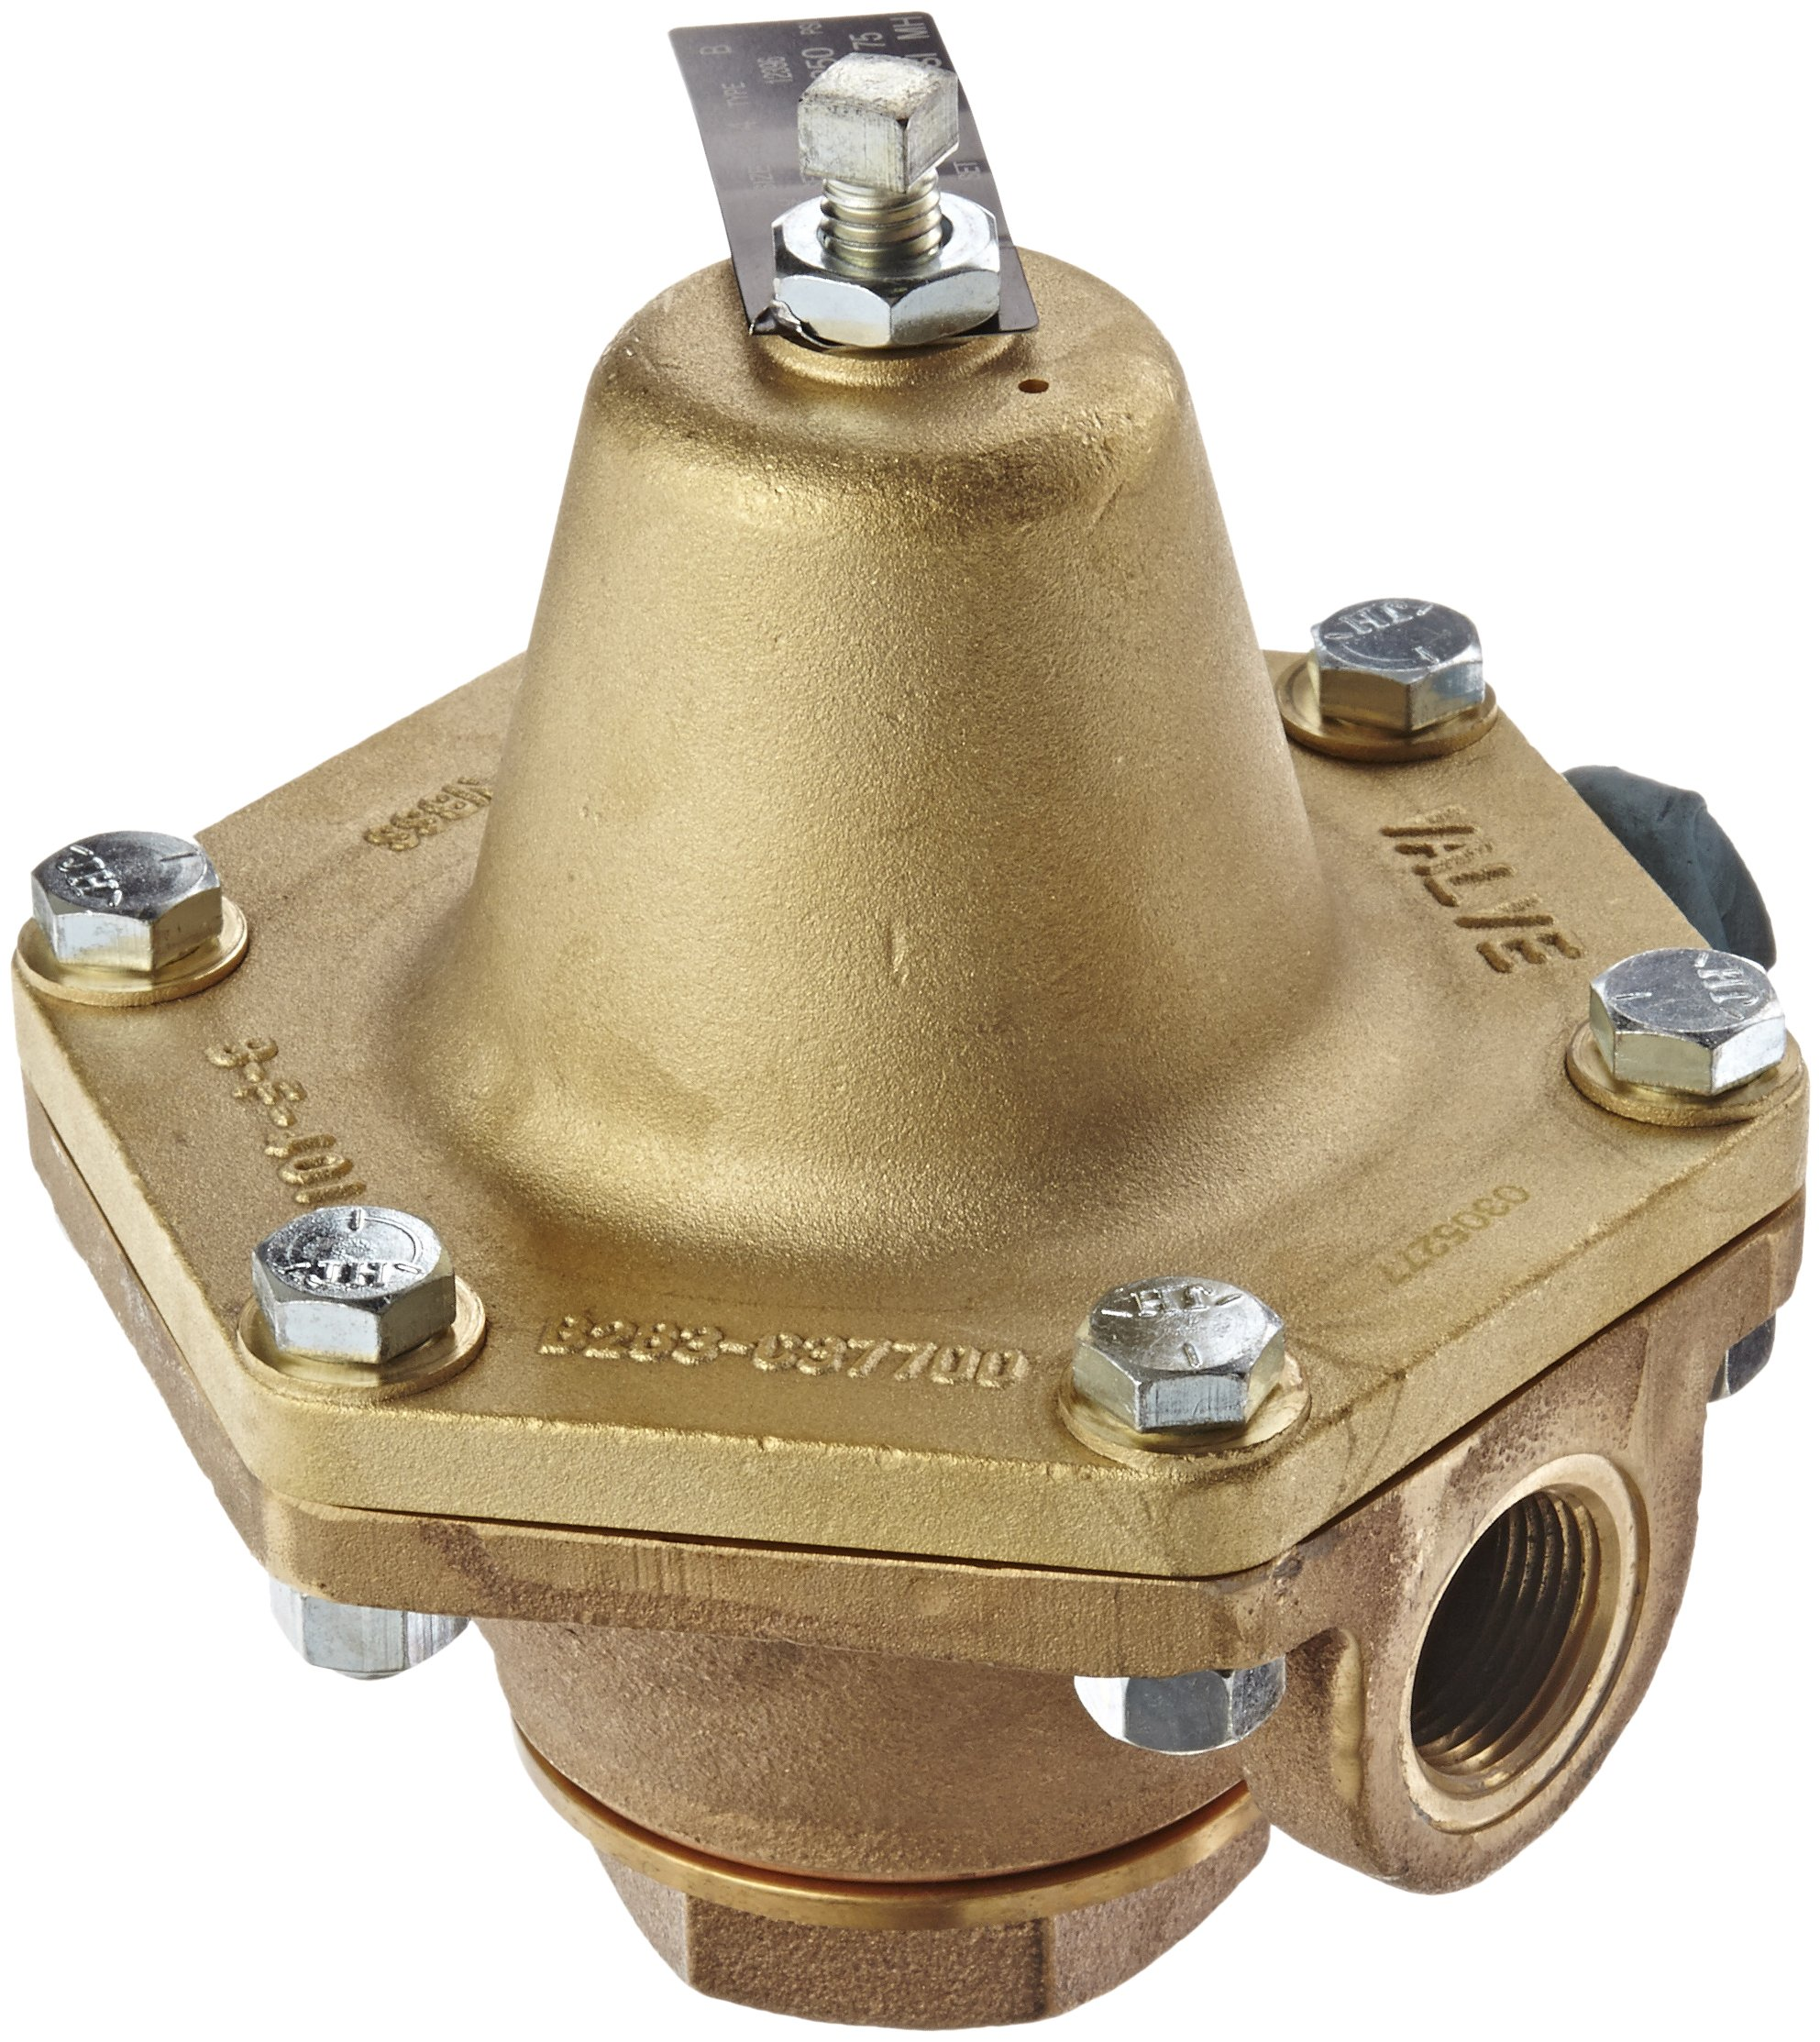 Cash Valve 12396-0053 Bronze Pressure Regulator, 30 - 75 PSI Pressure Range, 3/4'' NPT Female by Cash Valve